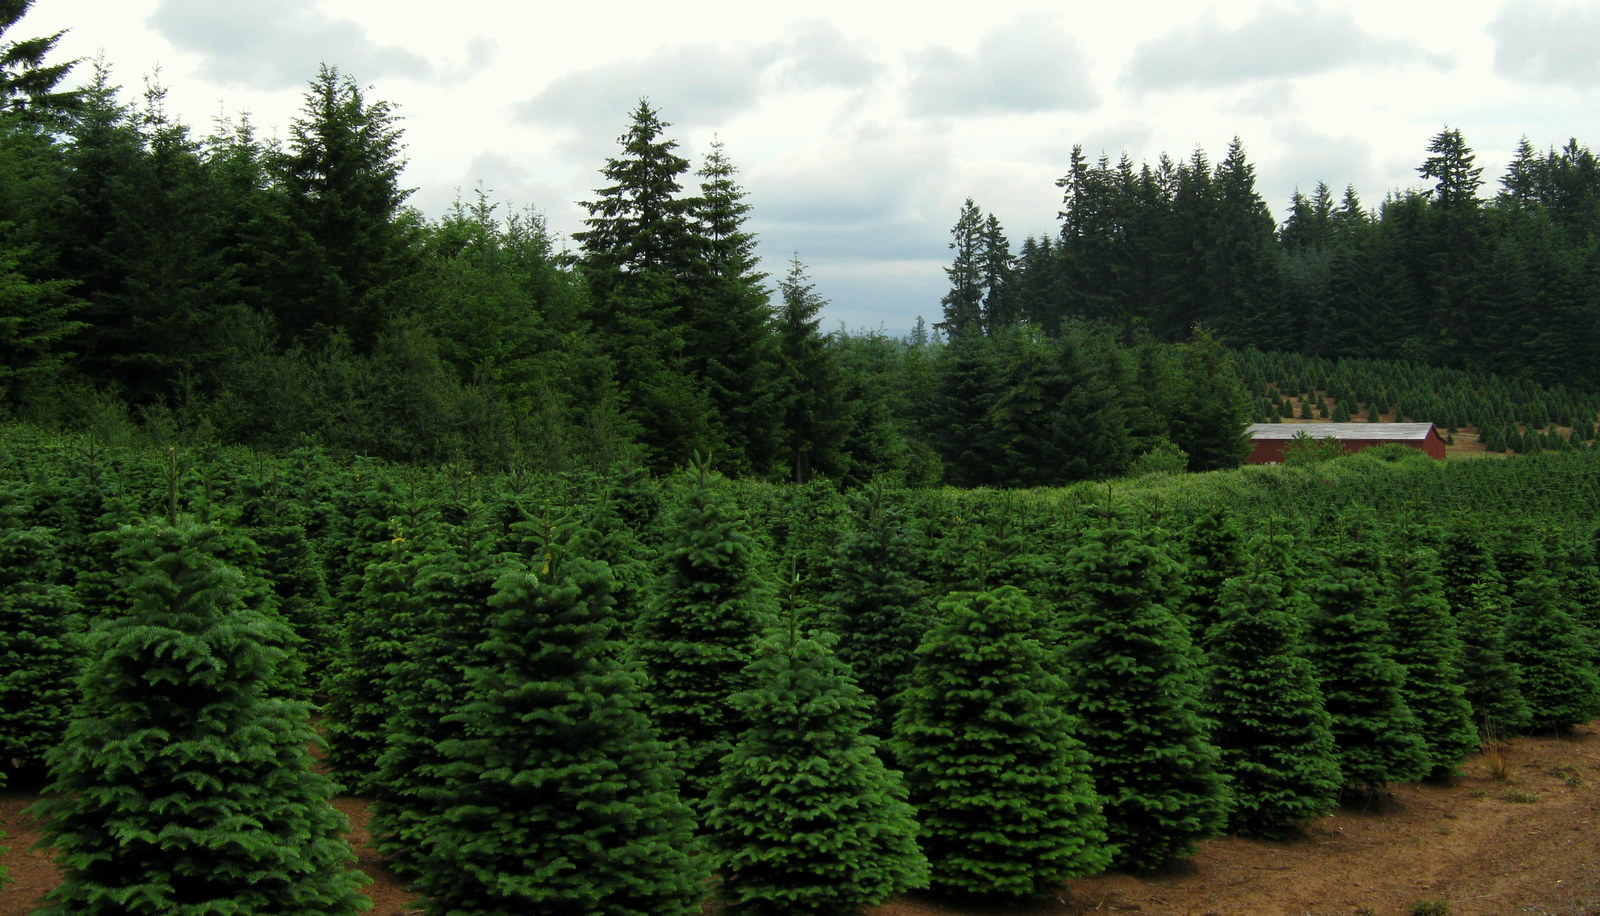 filechristmas trees near redland oregonjpg - How To Start A Christmas Tree Farm